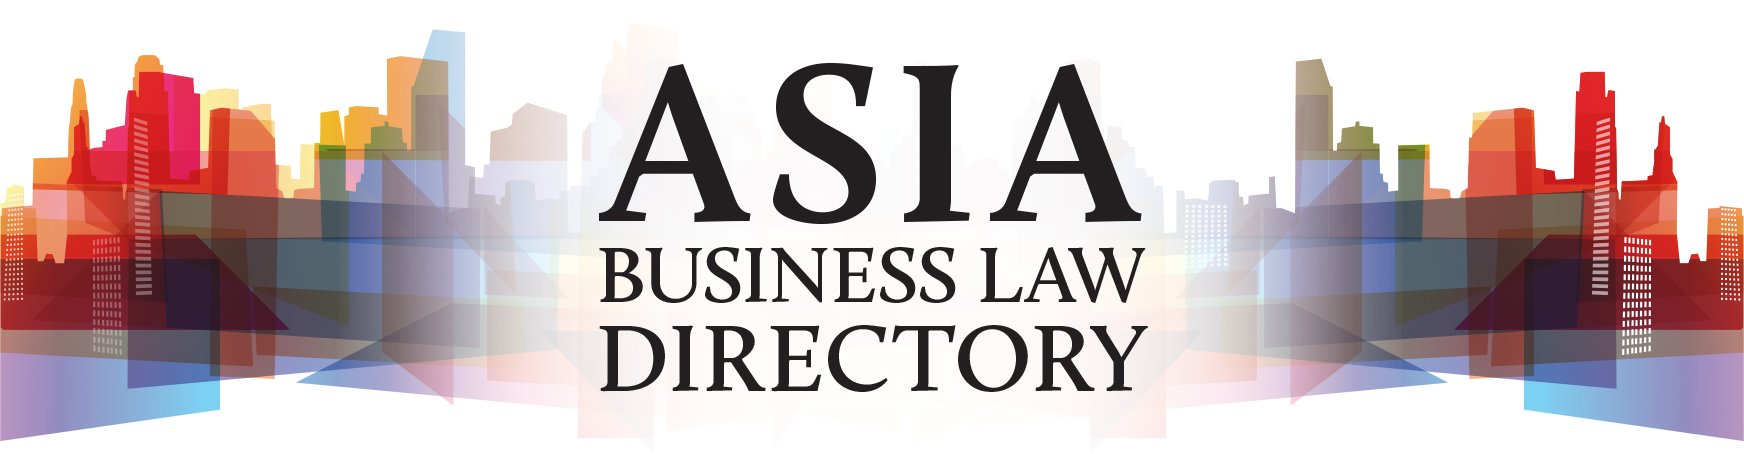 Top Asian business law firms | Asia Business Law Directory